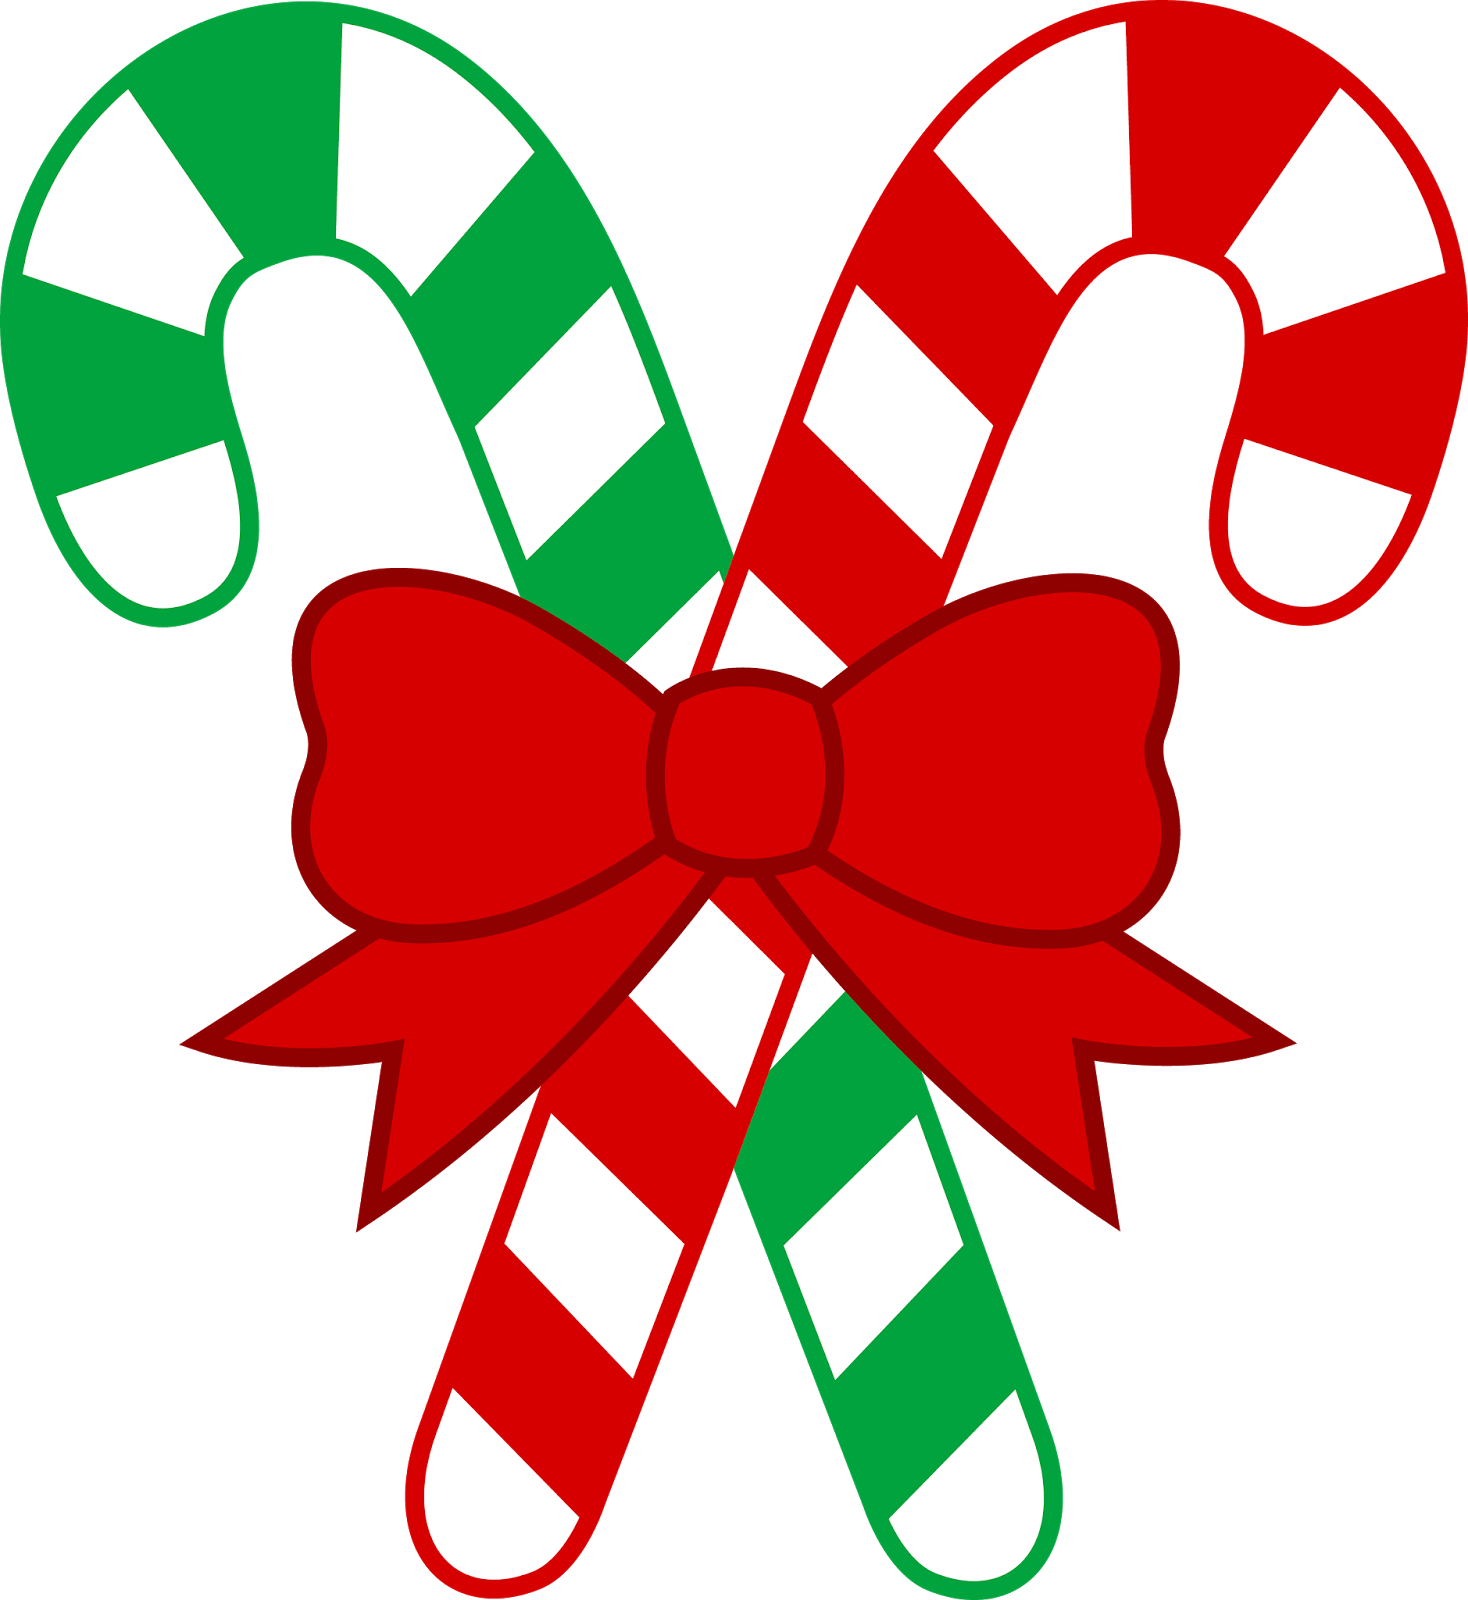 Holidays clipart thing, Holidays thing Transparent FREE for.